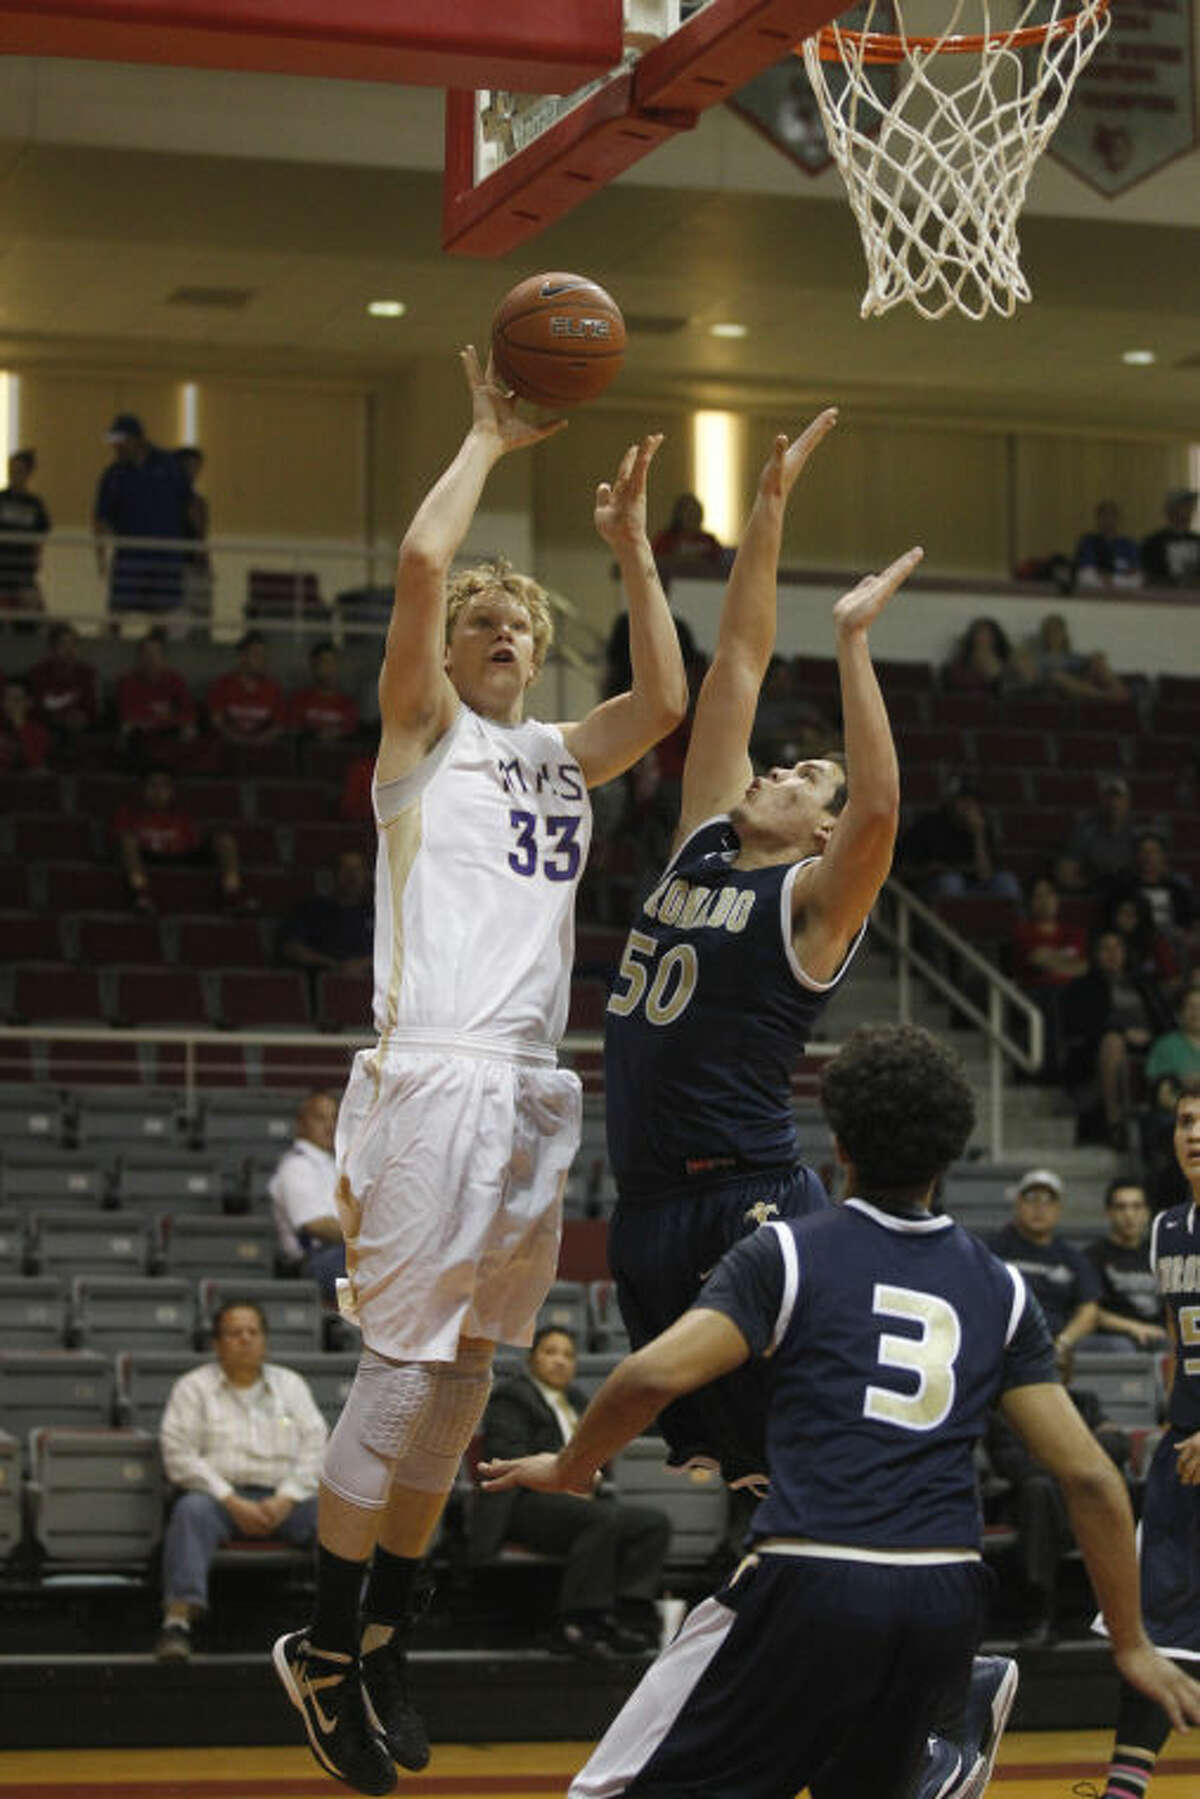 Midland High's Nate Rogers (33) goes up against El Paso Coronado's Abraham Gamboa (50) on Tuesday at Sul Ross State's Gallego Center in Alpine. James Durbin/Reporter-Telegram